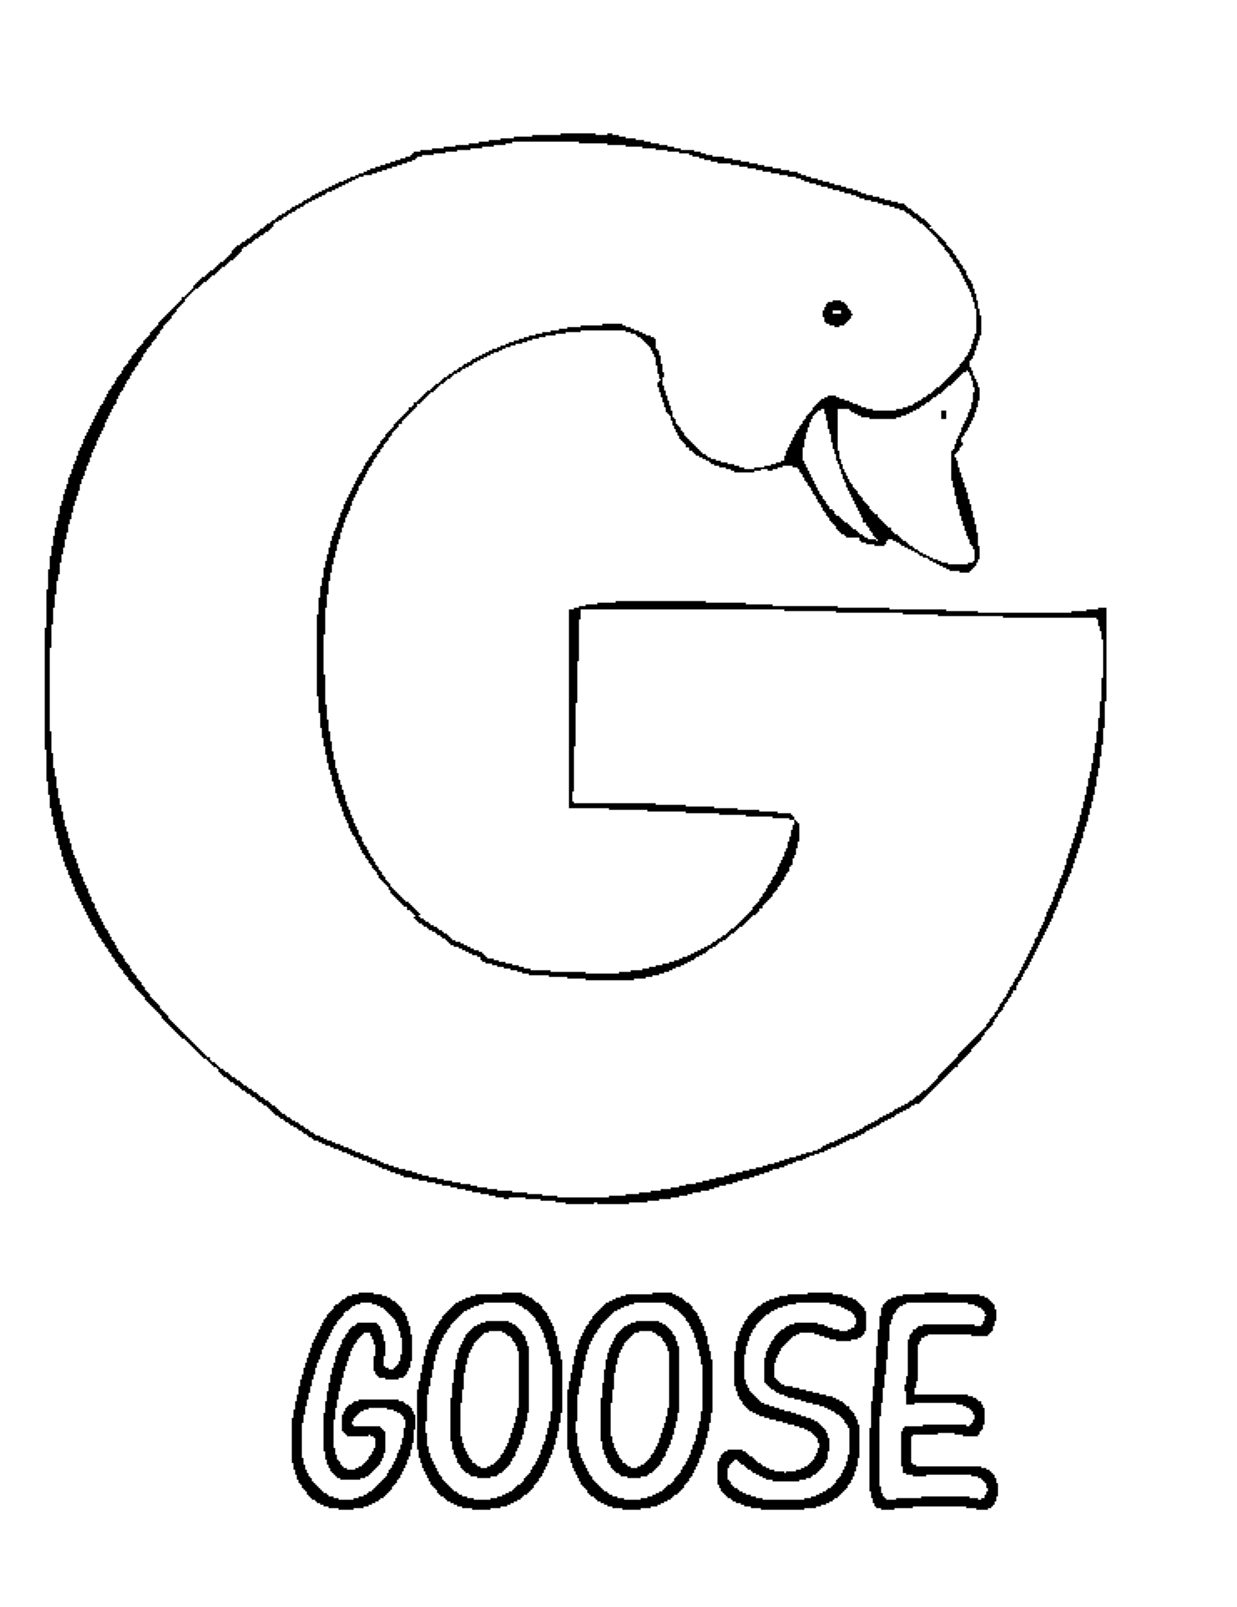 Download Or Print This Amazing Coloring Page Letter G